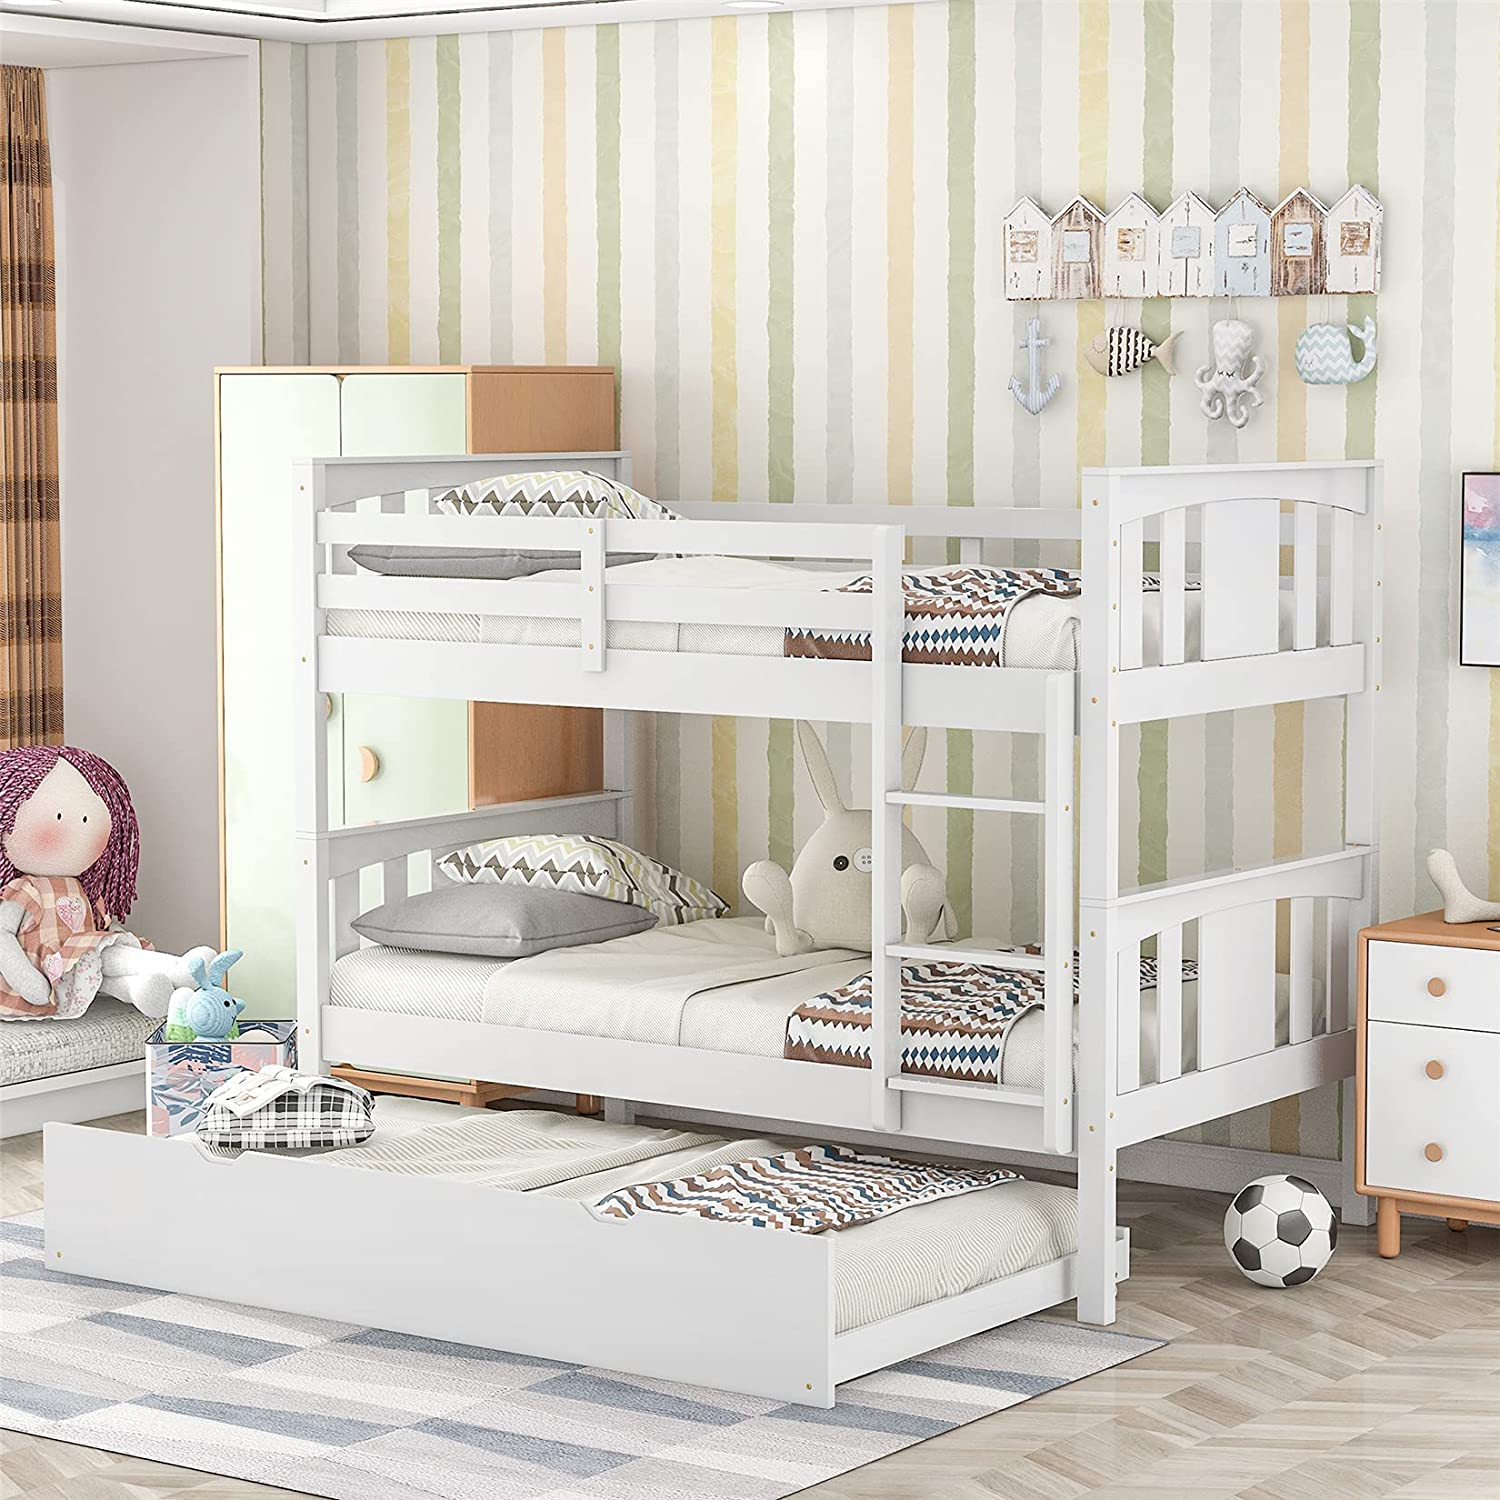 Challenge the lowest price of Japan Twin Over Bunk Bed with 2 Convertible Size store Trundle to